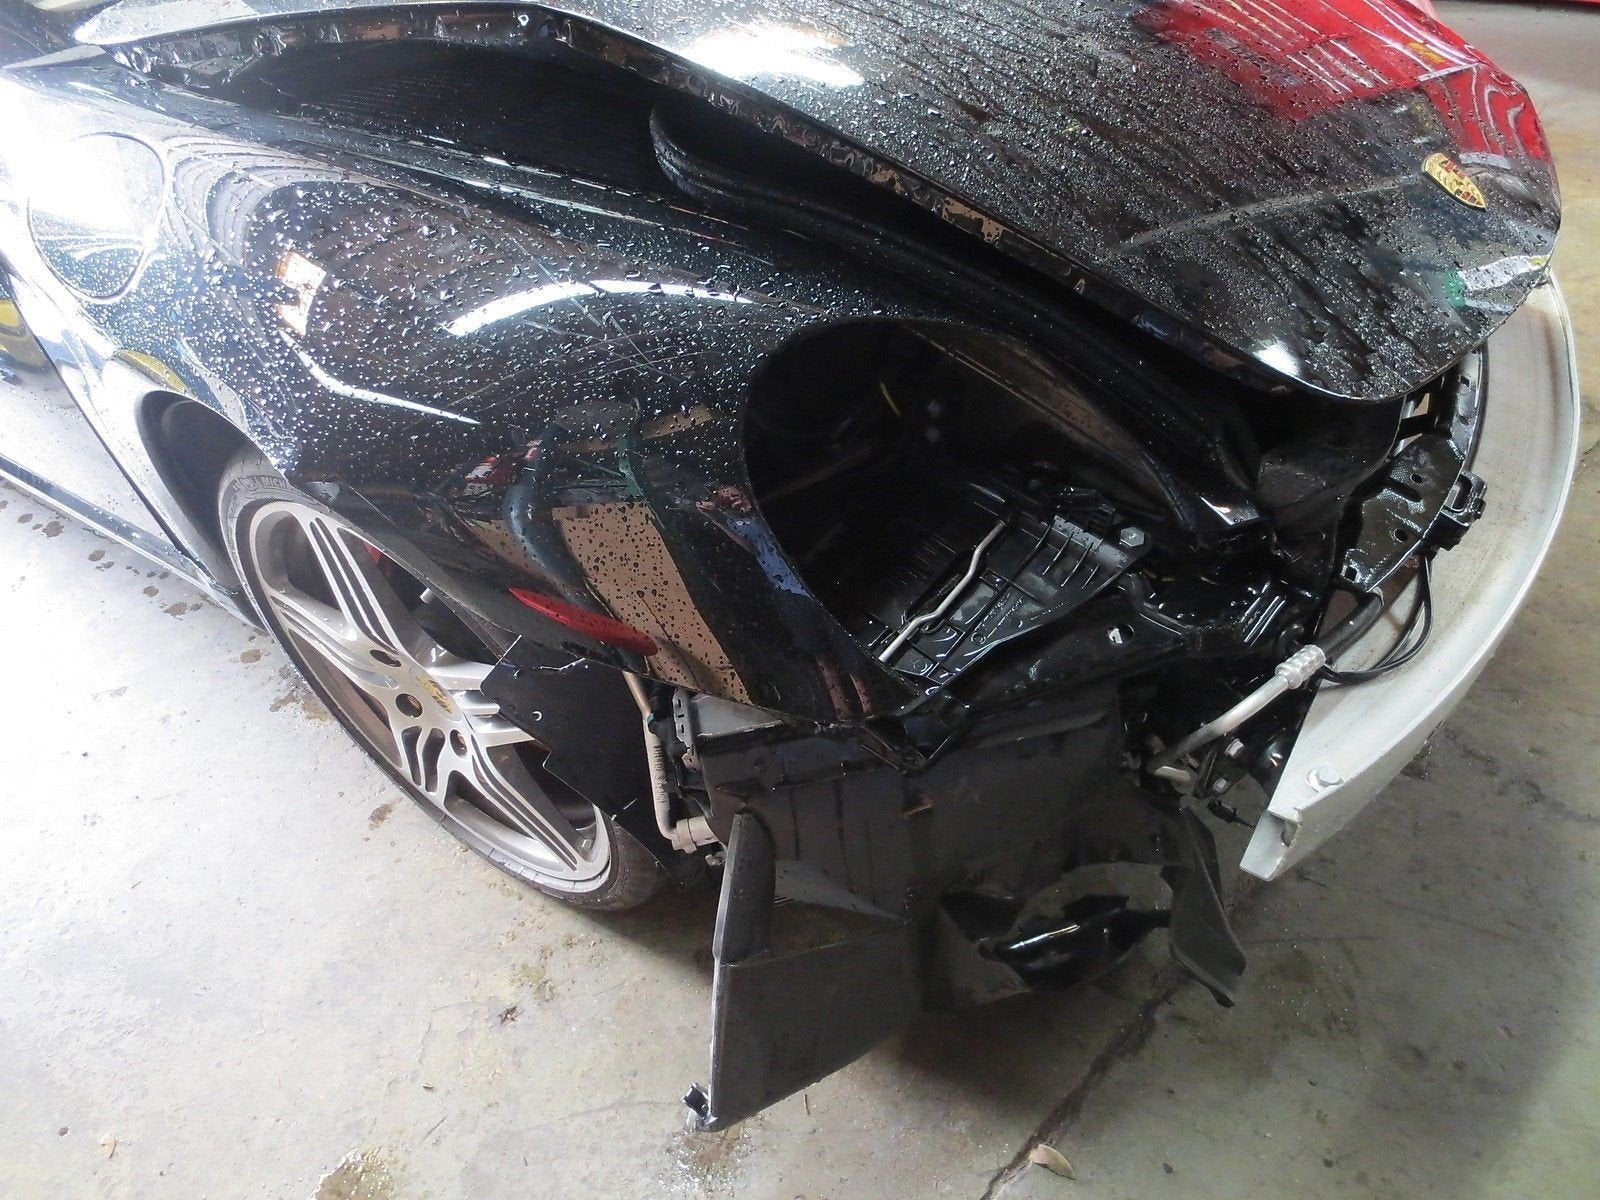 08 Porsche 987 CAYMAN S Limited Edition Parting Out car parts part 46,271